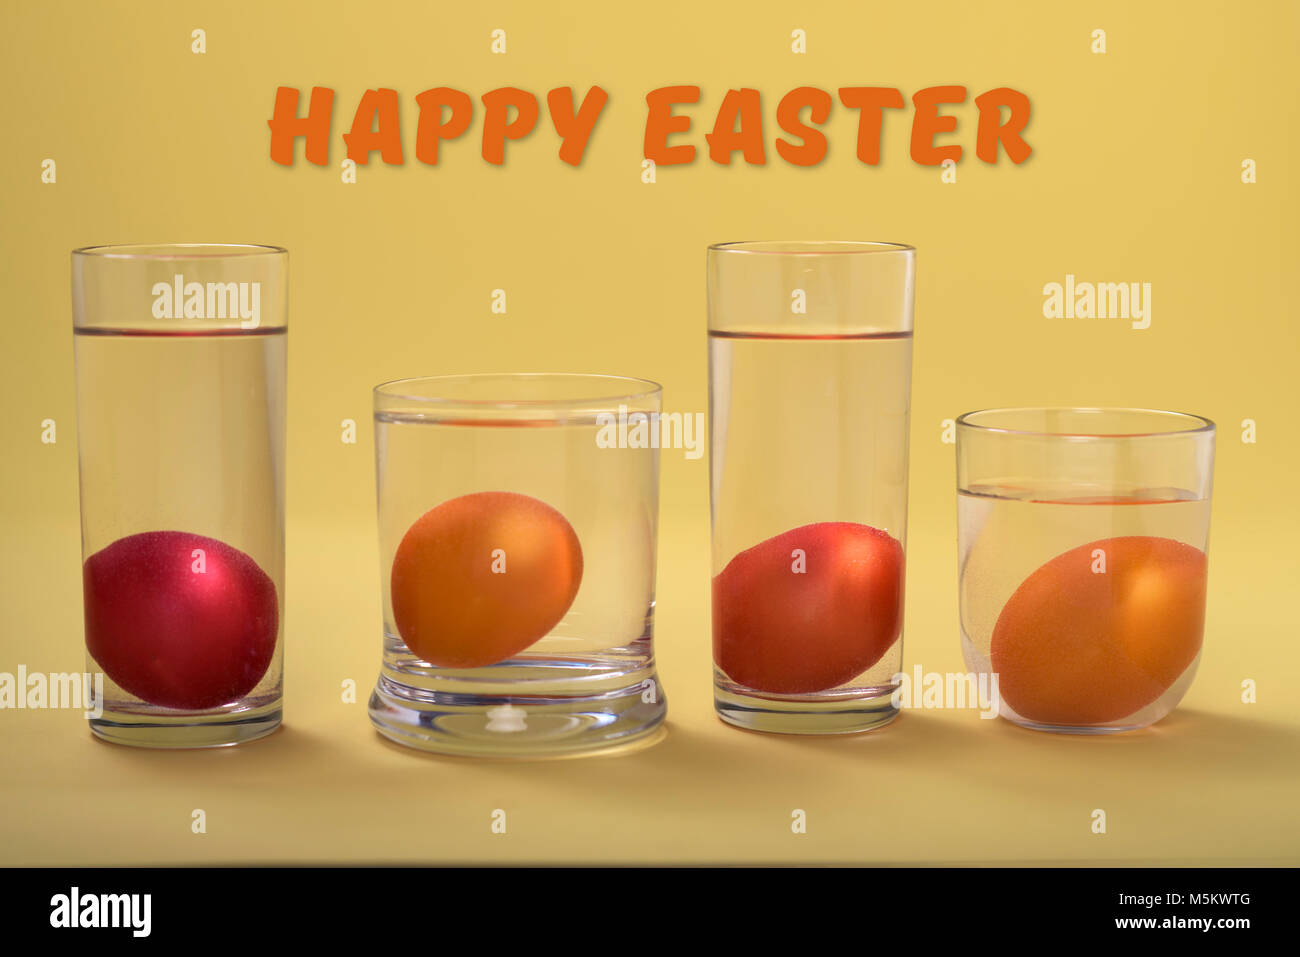 easter eggs in glass-happy easter - Stock Image